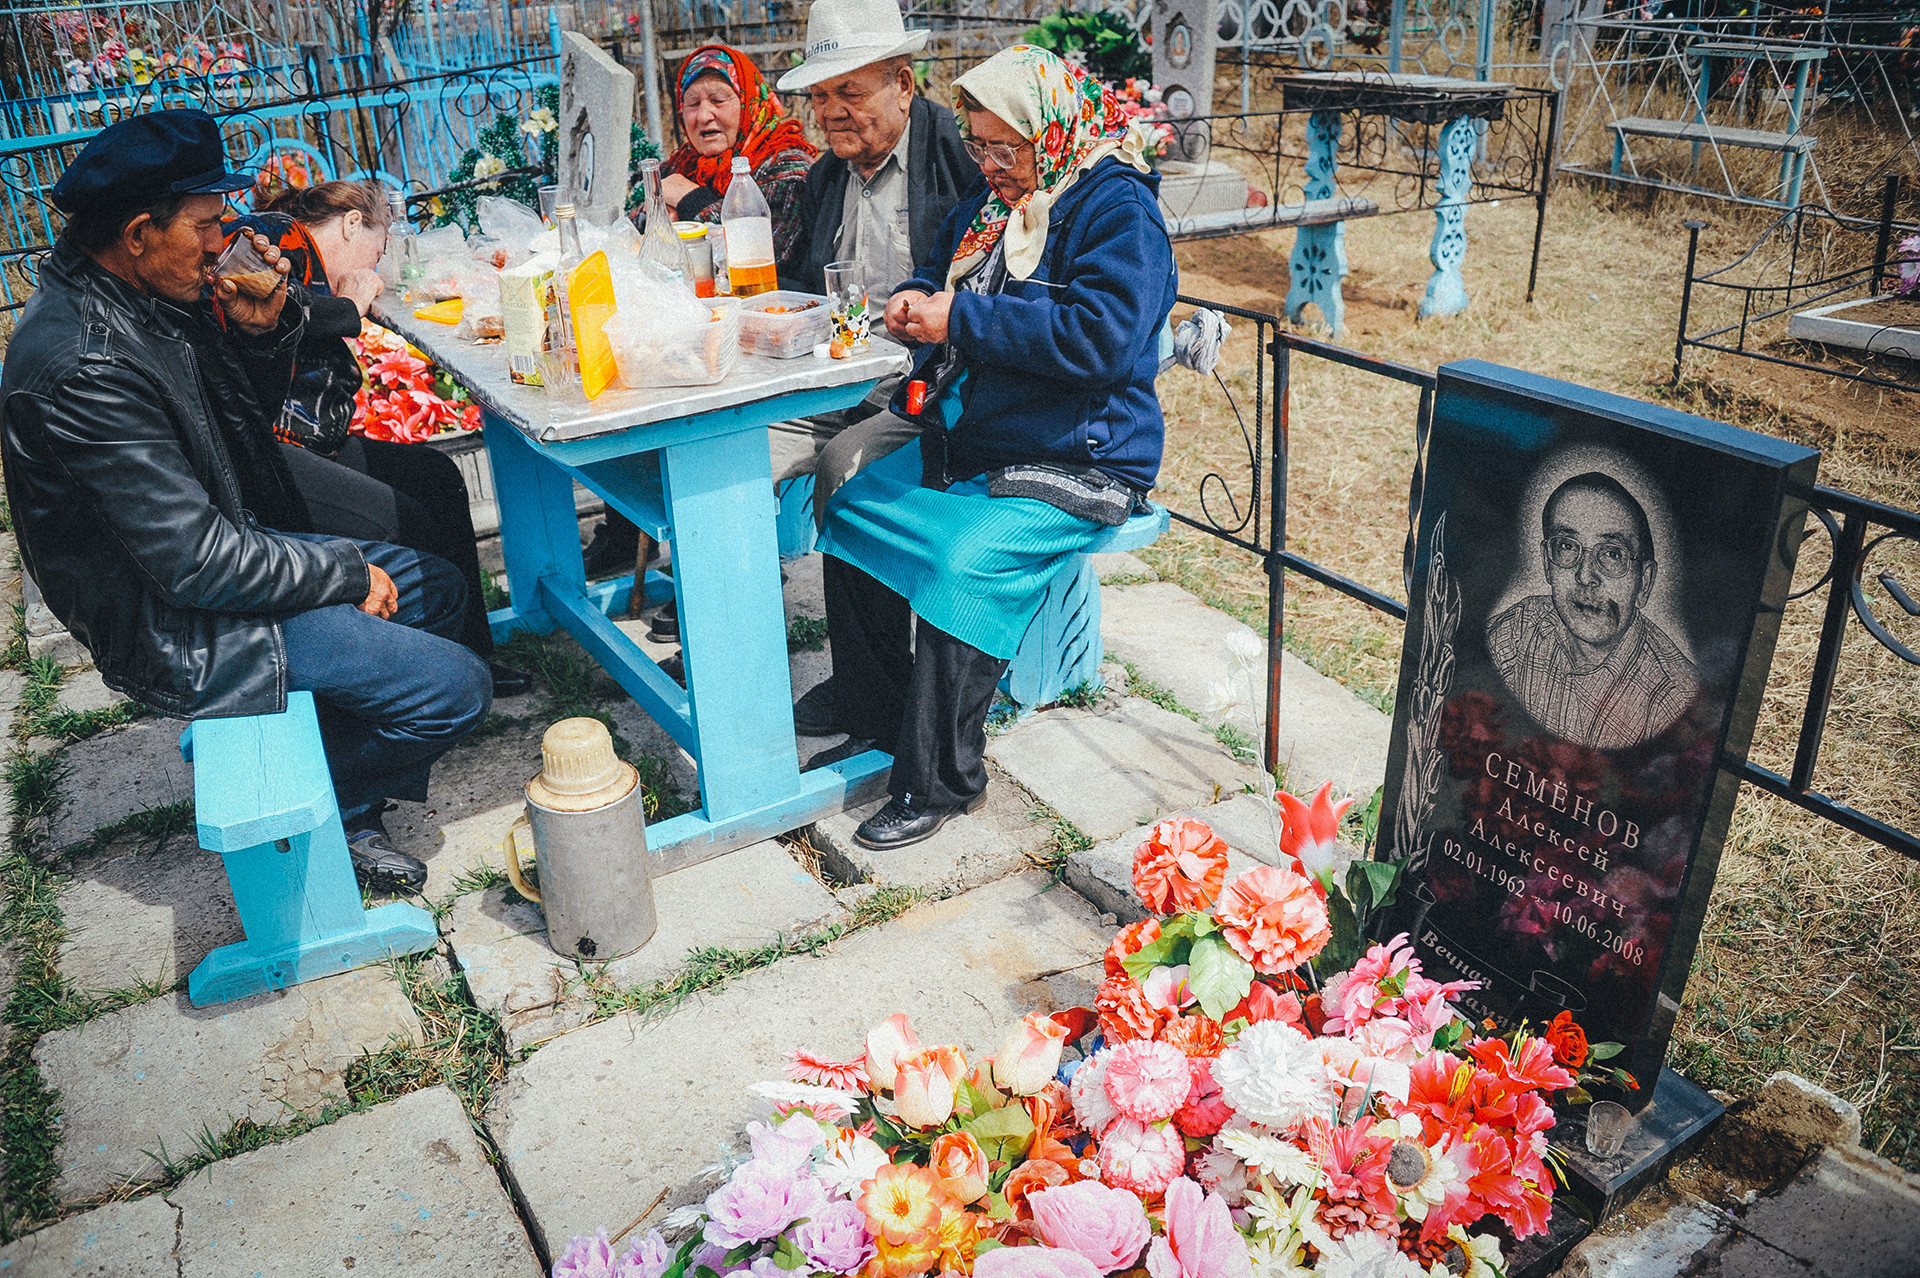 Russians having a commemorative meal at the grave of their relative